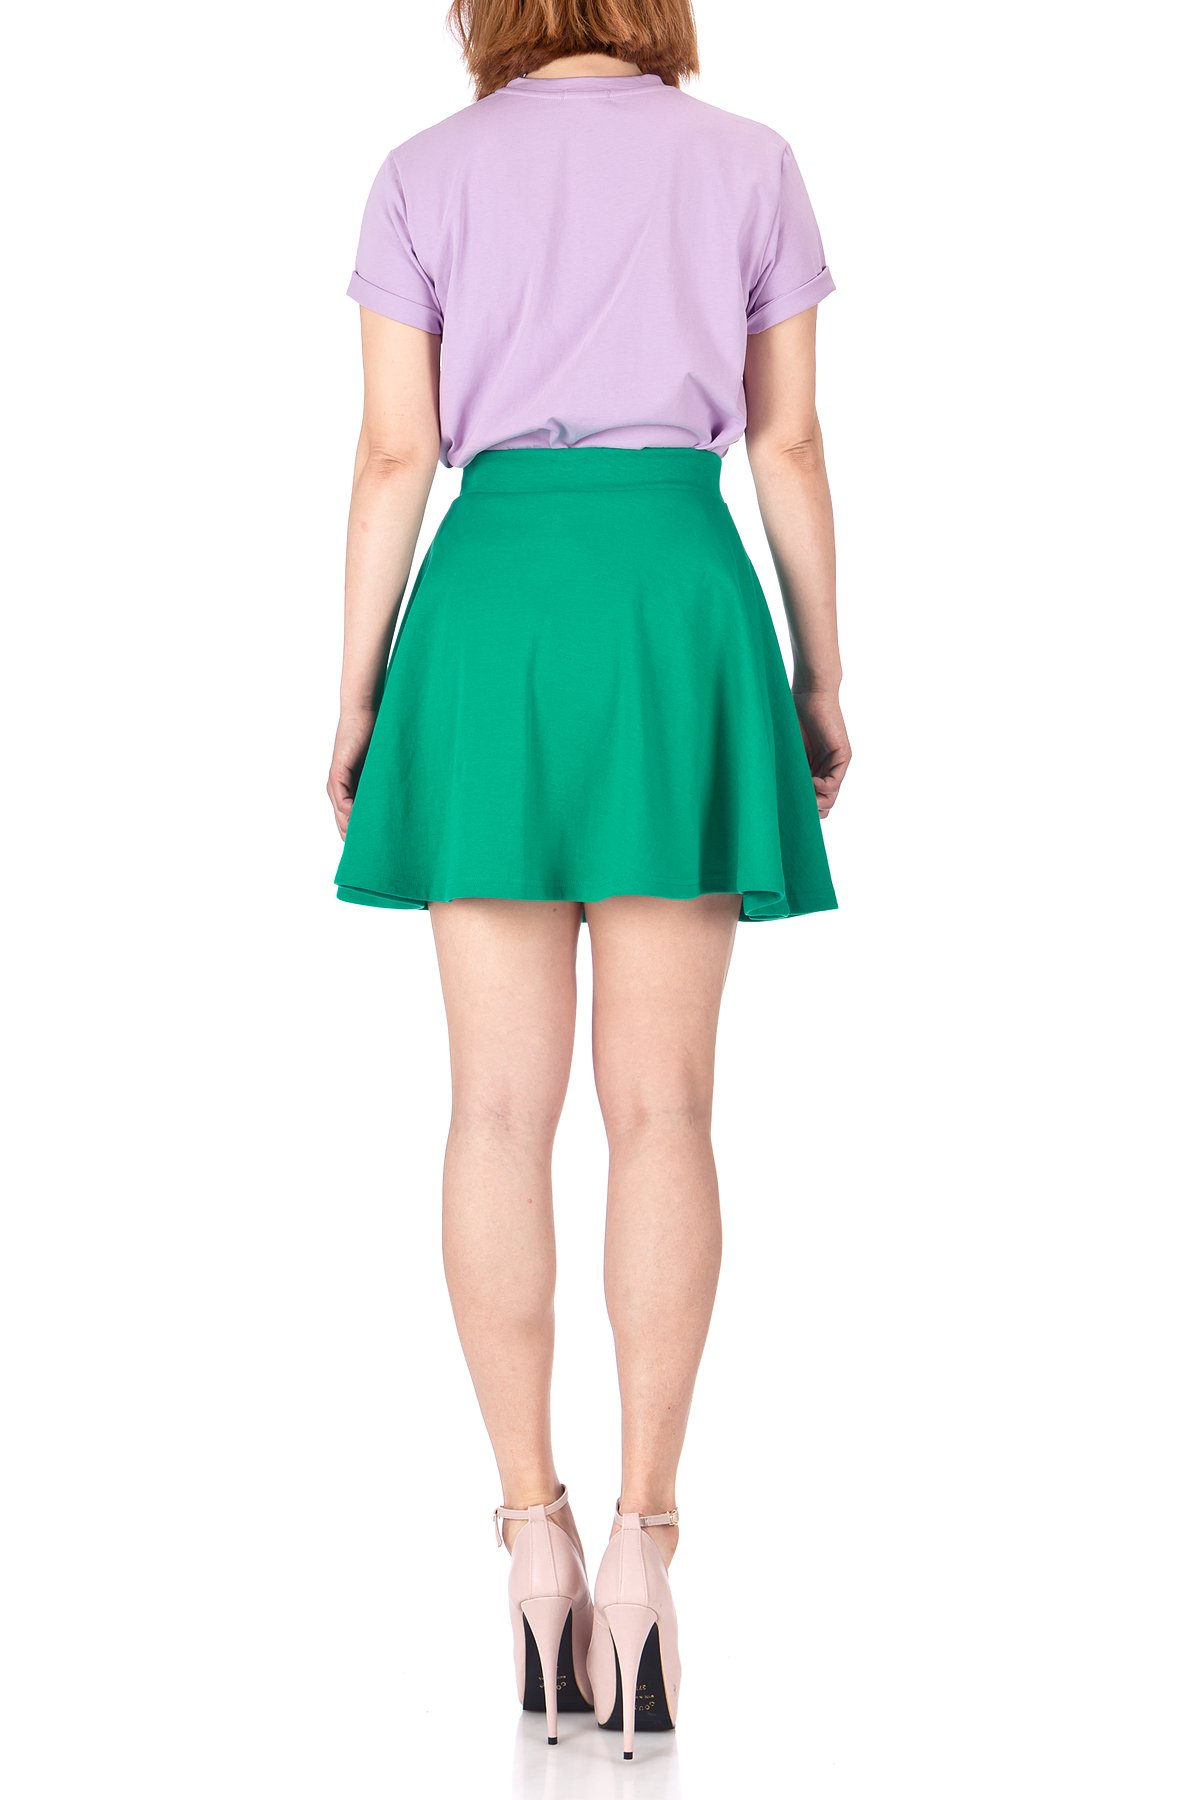 Basic Solid Stretchy Cotton High Waist A line Flared Skater Mini Skirt Green 04